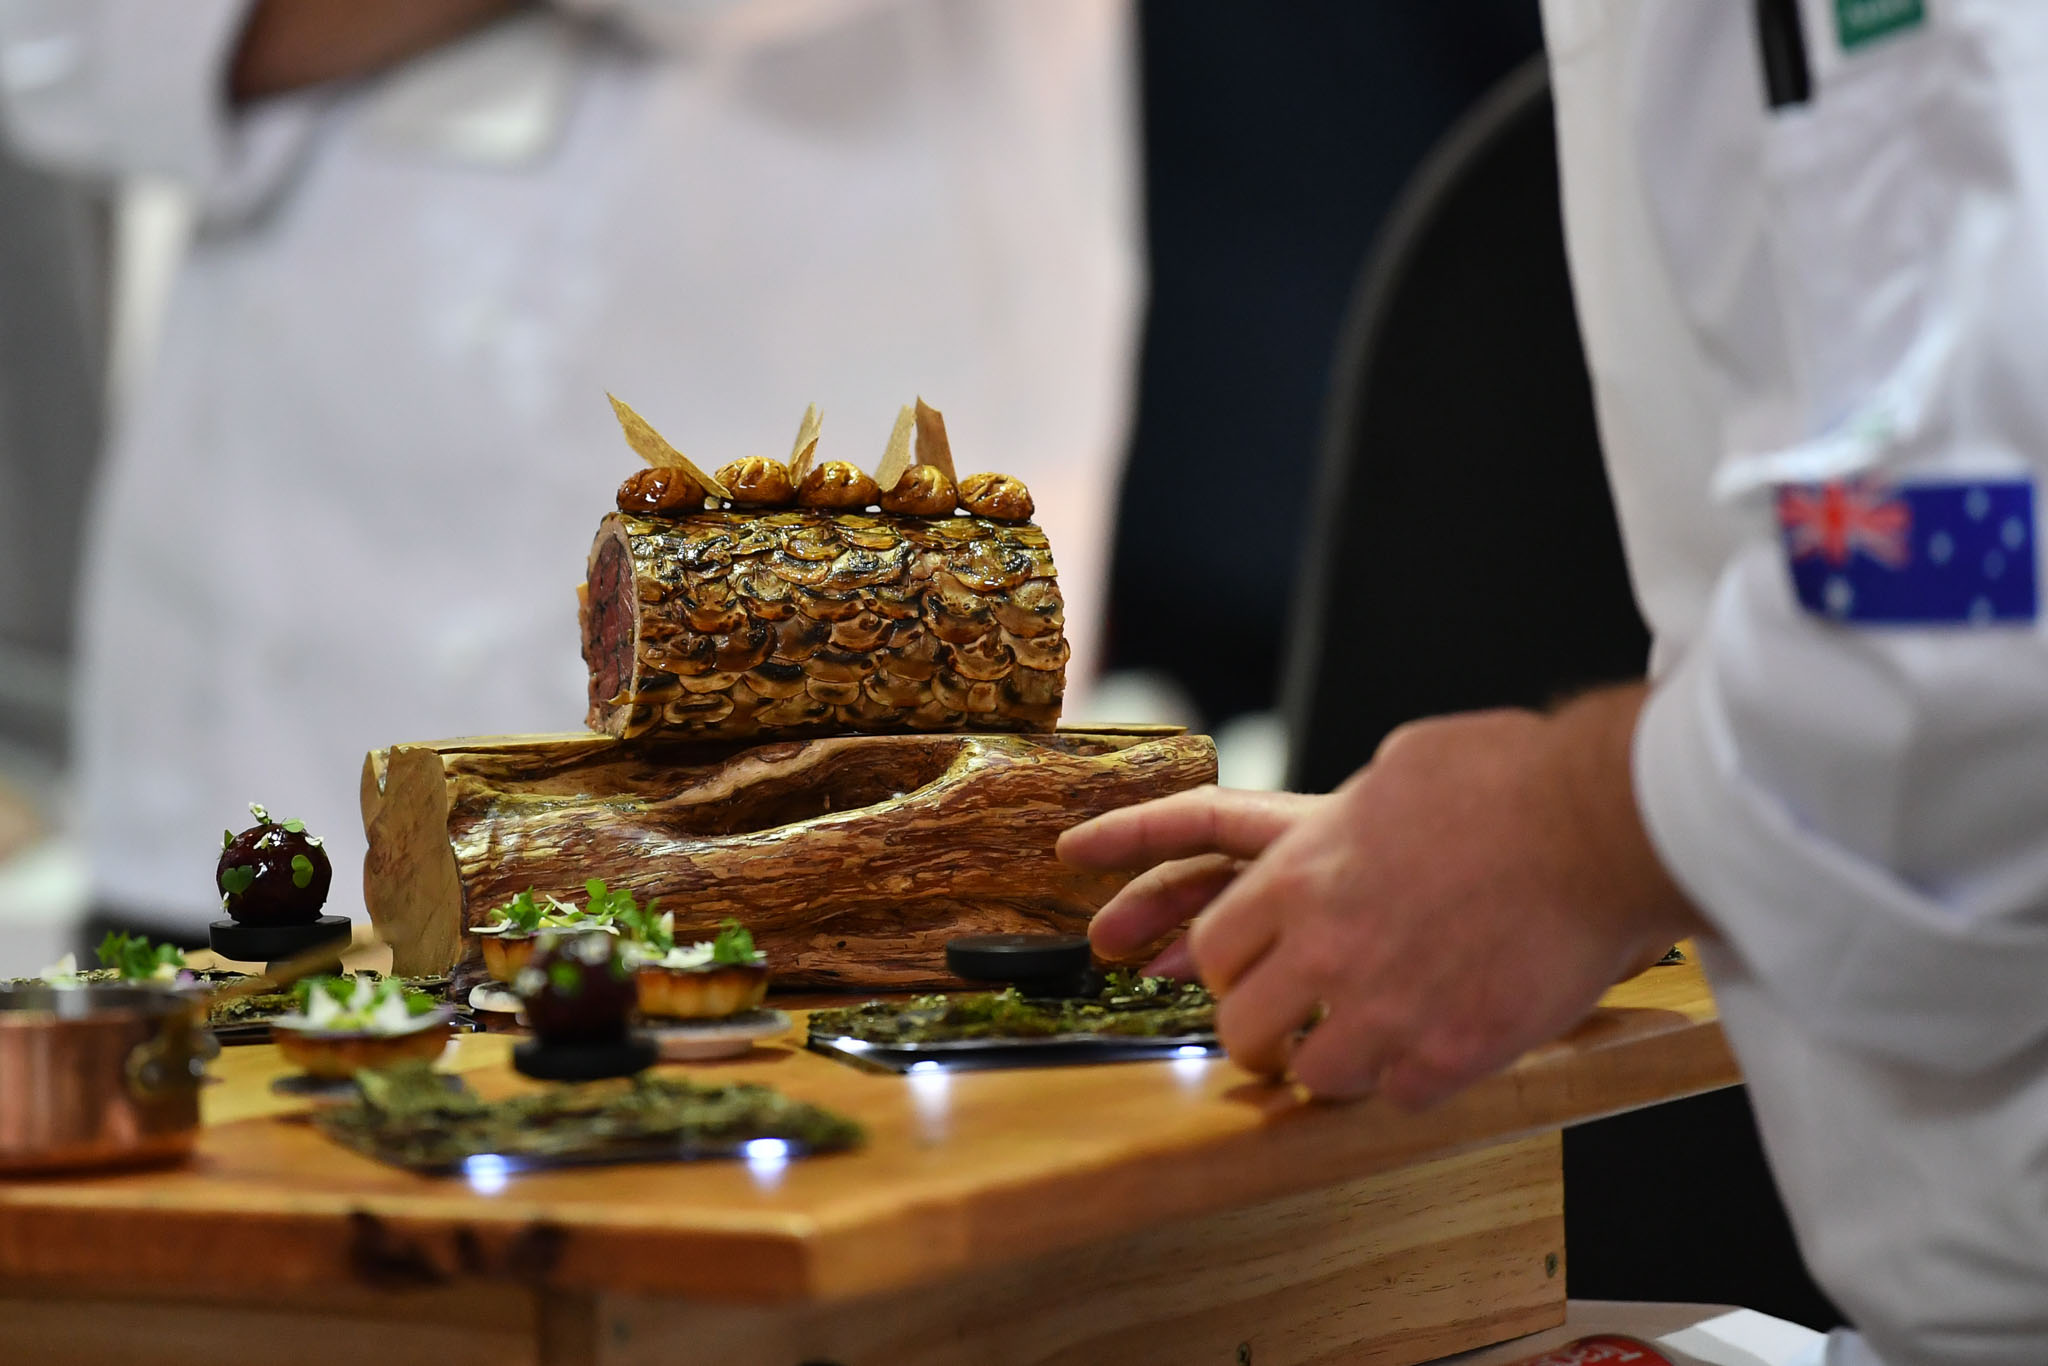 Melbourne, 30 May 2017 - Michael Cole of the Georgie Bass Café & Cookery in Flinders plates up his meat platter at the Australian selection trials of the Bocuse d'Or culinary competition held during the Food Service Australia show at the Royal Exhibition Building in Melbourne, Australia. Photo Sydney Low